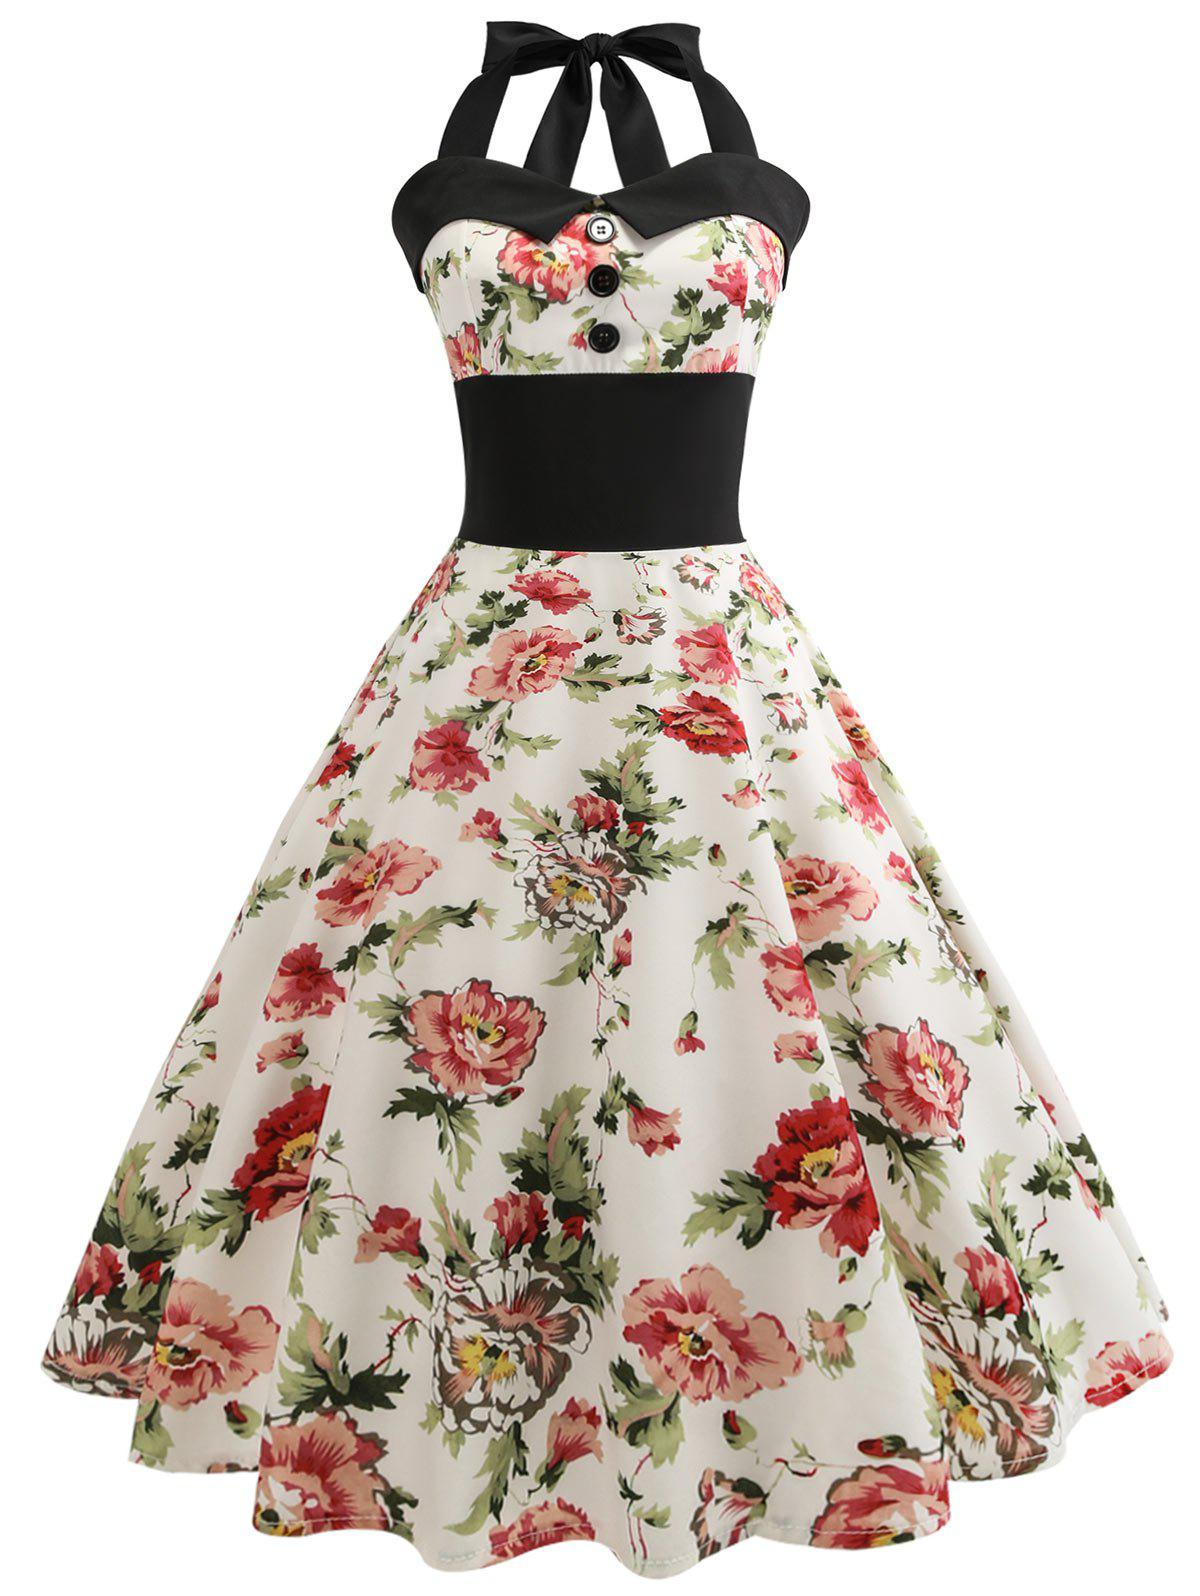 Assez Vintage Dresses, Cheap Vintage Clothing and Retro Dresses for  IB18